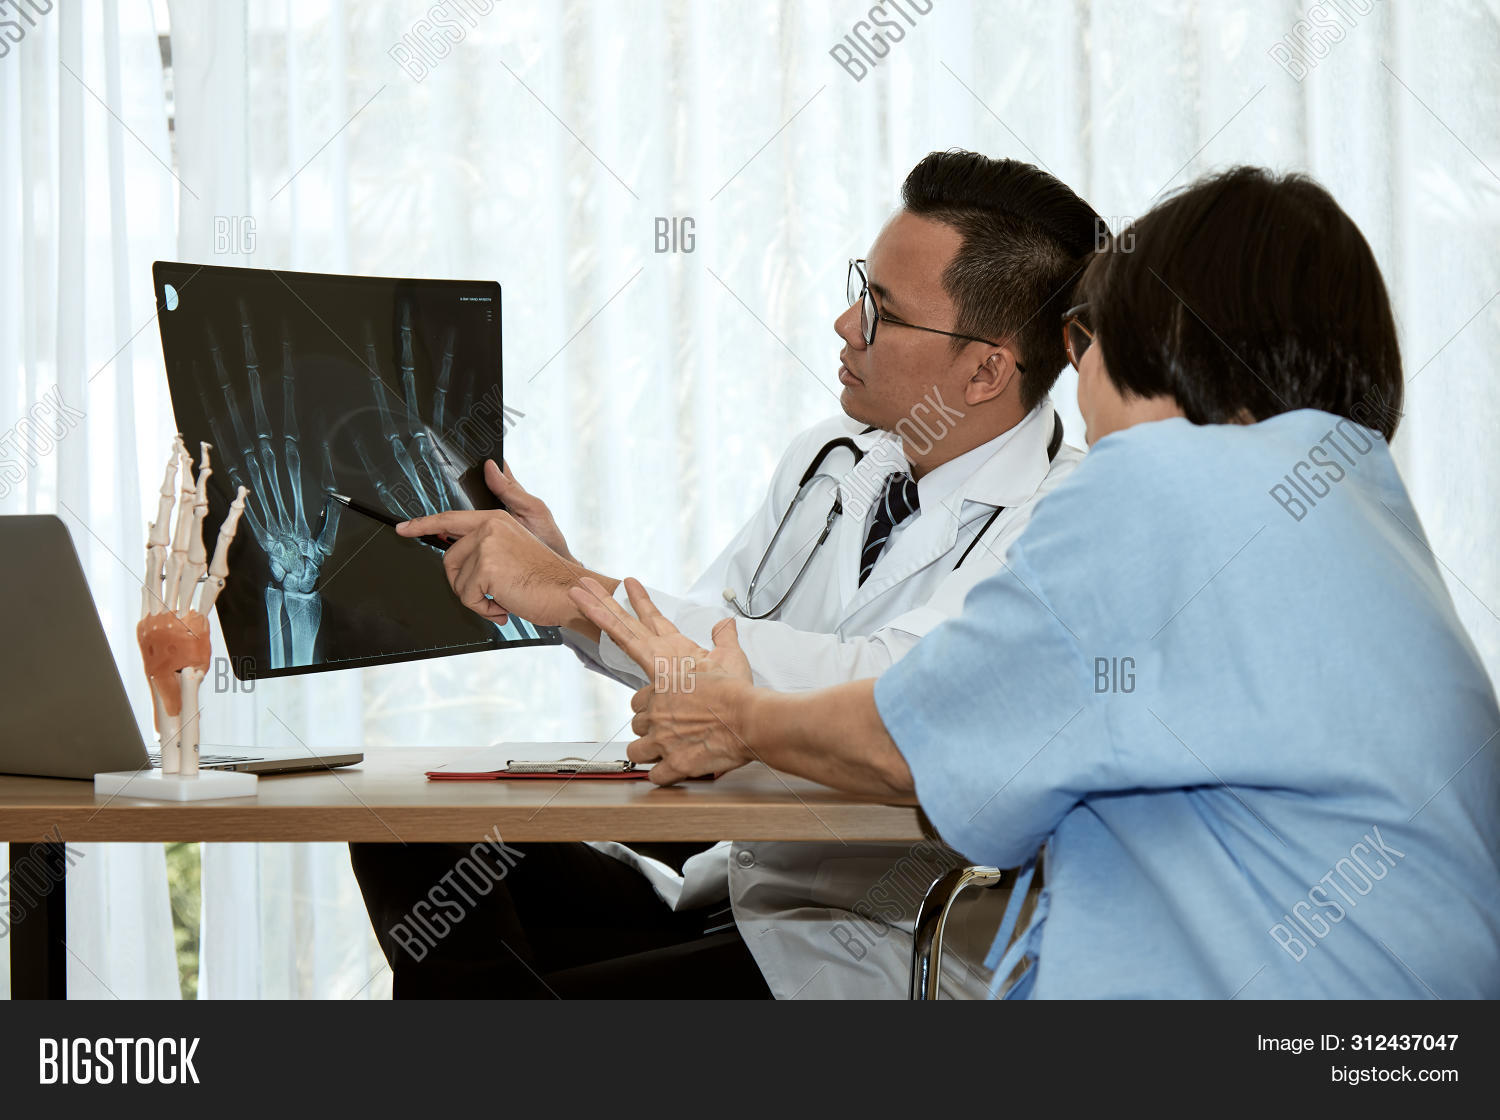 adult,analyzing,bone,care,clinic,computer,diagnose,diagnosis,diagnostic,disease,doctor,examination,explaining,female,film,health,healthcare,hospital,human,injury,joint,looking,male,man,medical,medicine,occupation,orthopedic,orthopedist,patient,person,physician,professional,radiography,radiology,ray,result,scan,screen,skeleton,specialist,surgery,to,woman,x-ray